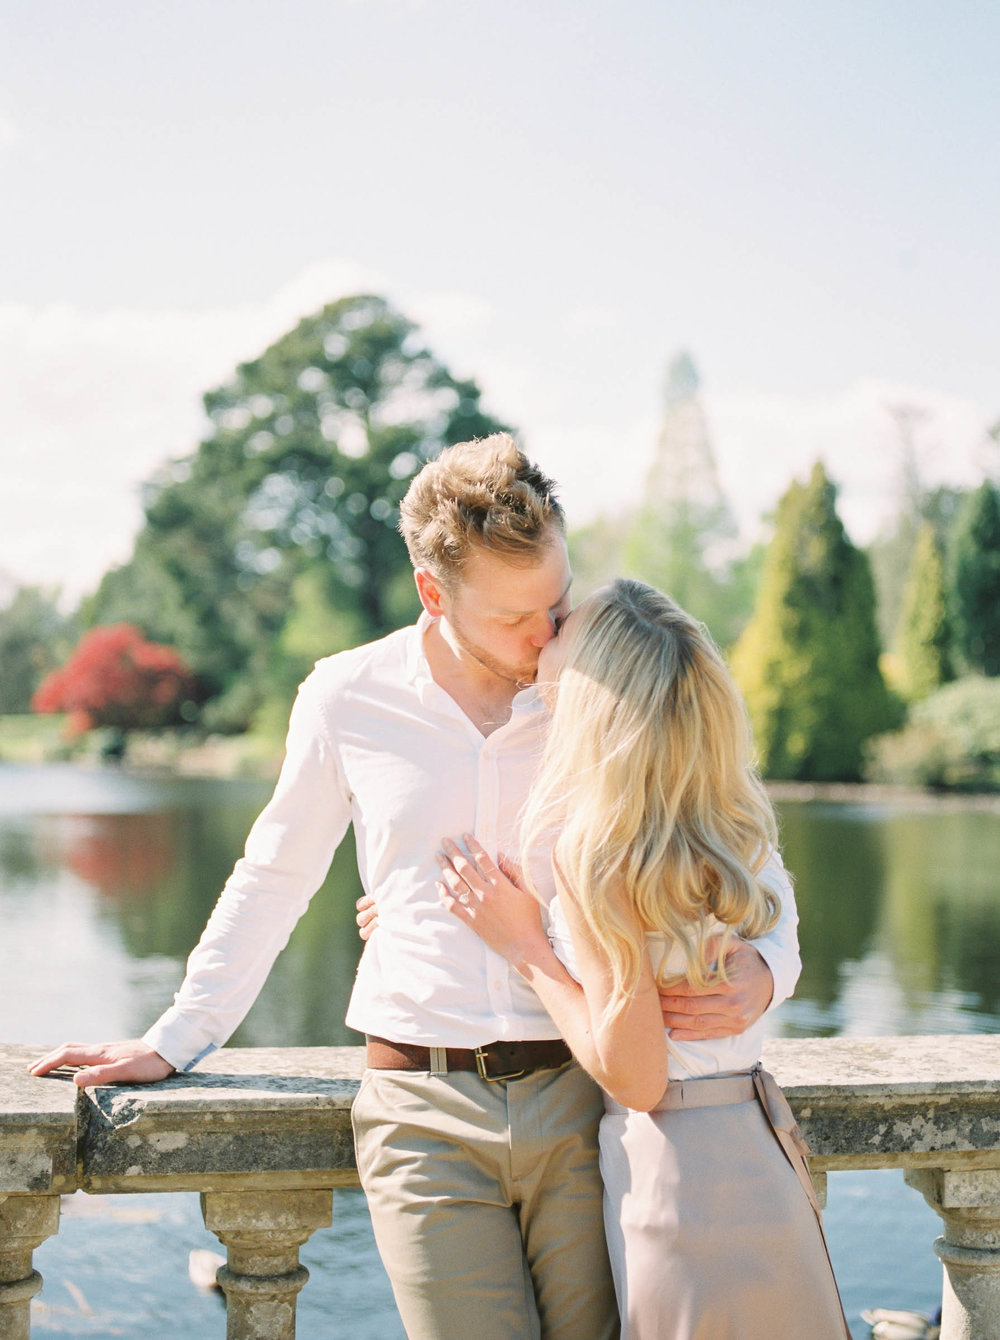 Amy O'Boyle Photography- Destination & UK Fine Art Film Wedding Photographer- Sheffield Park Garden National Trust Spring Engagement Shoot-31.jpg